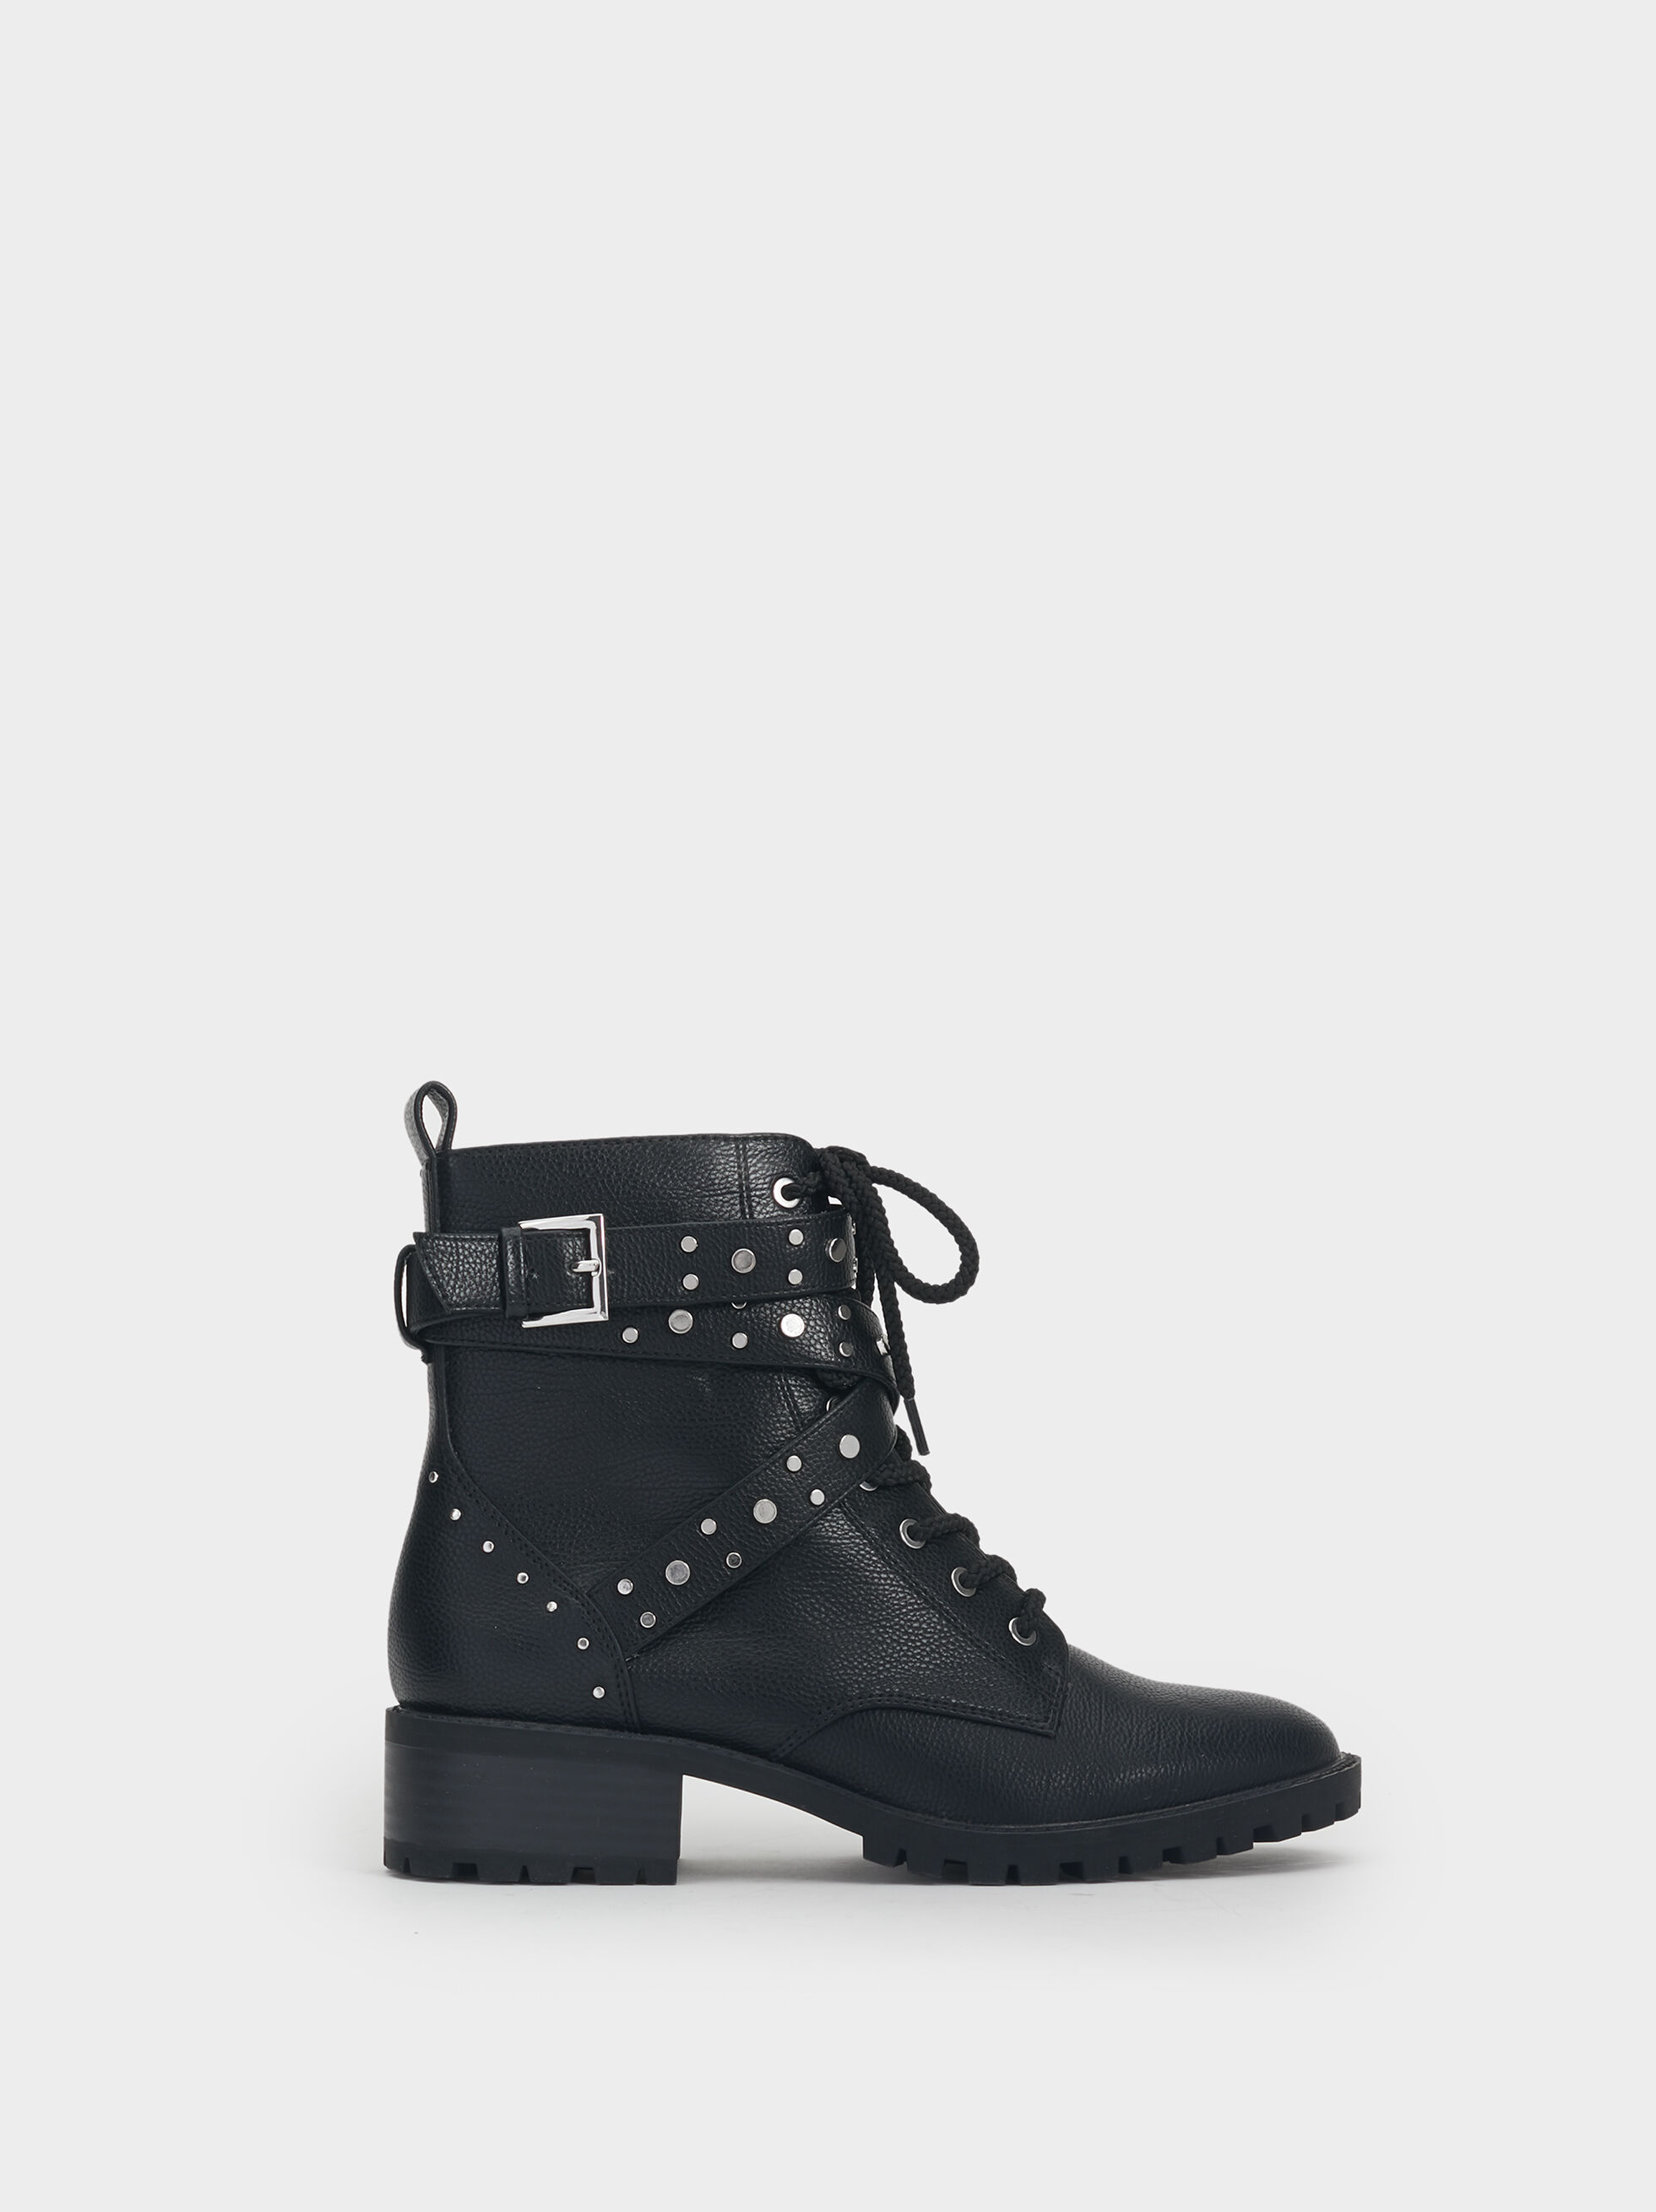 Studded Military Boots, Black, hi-res